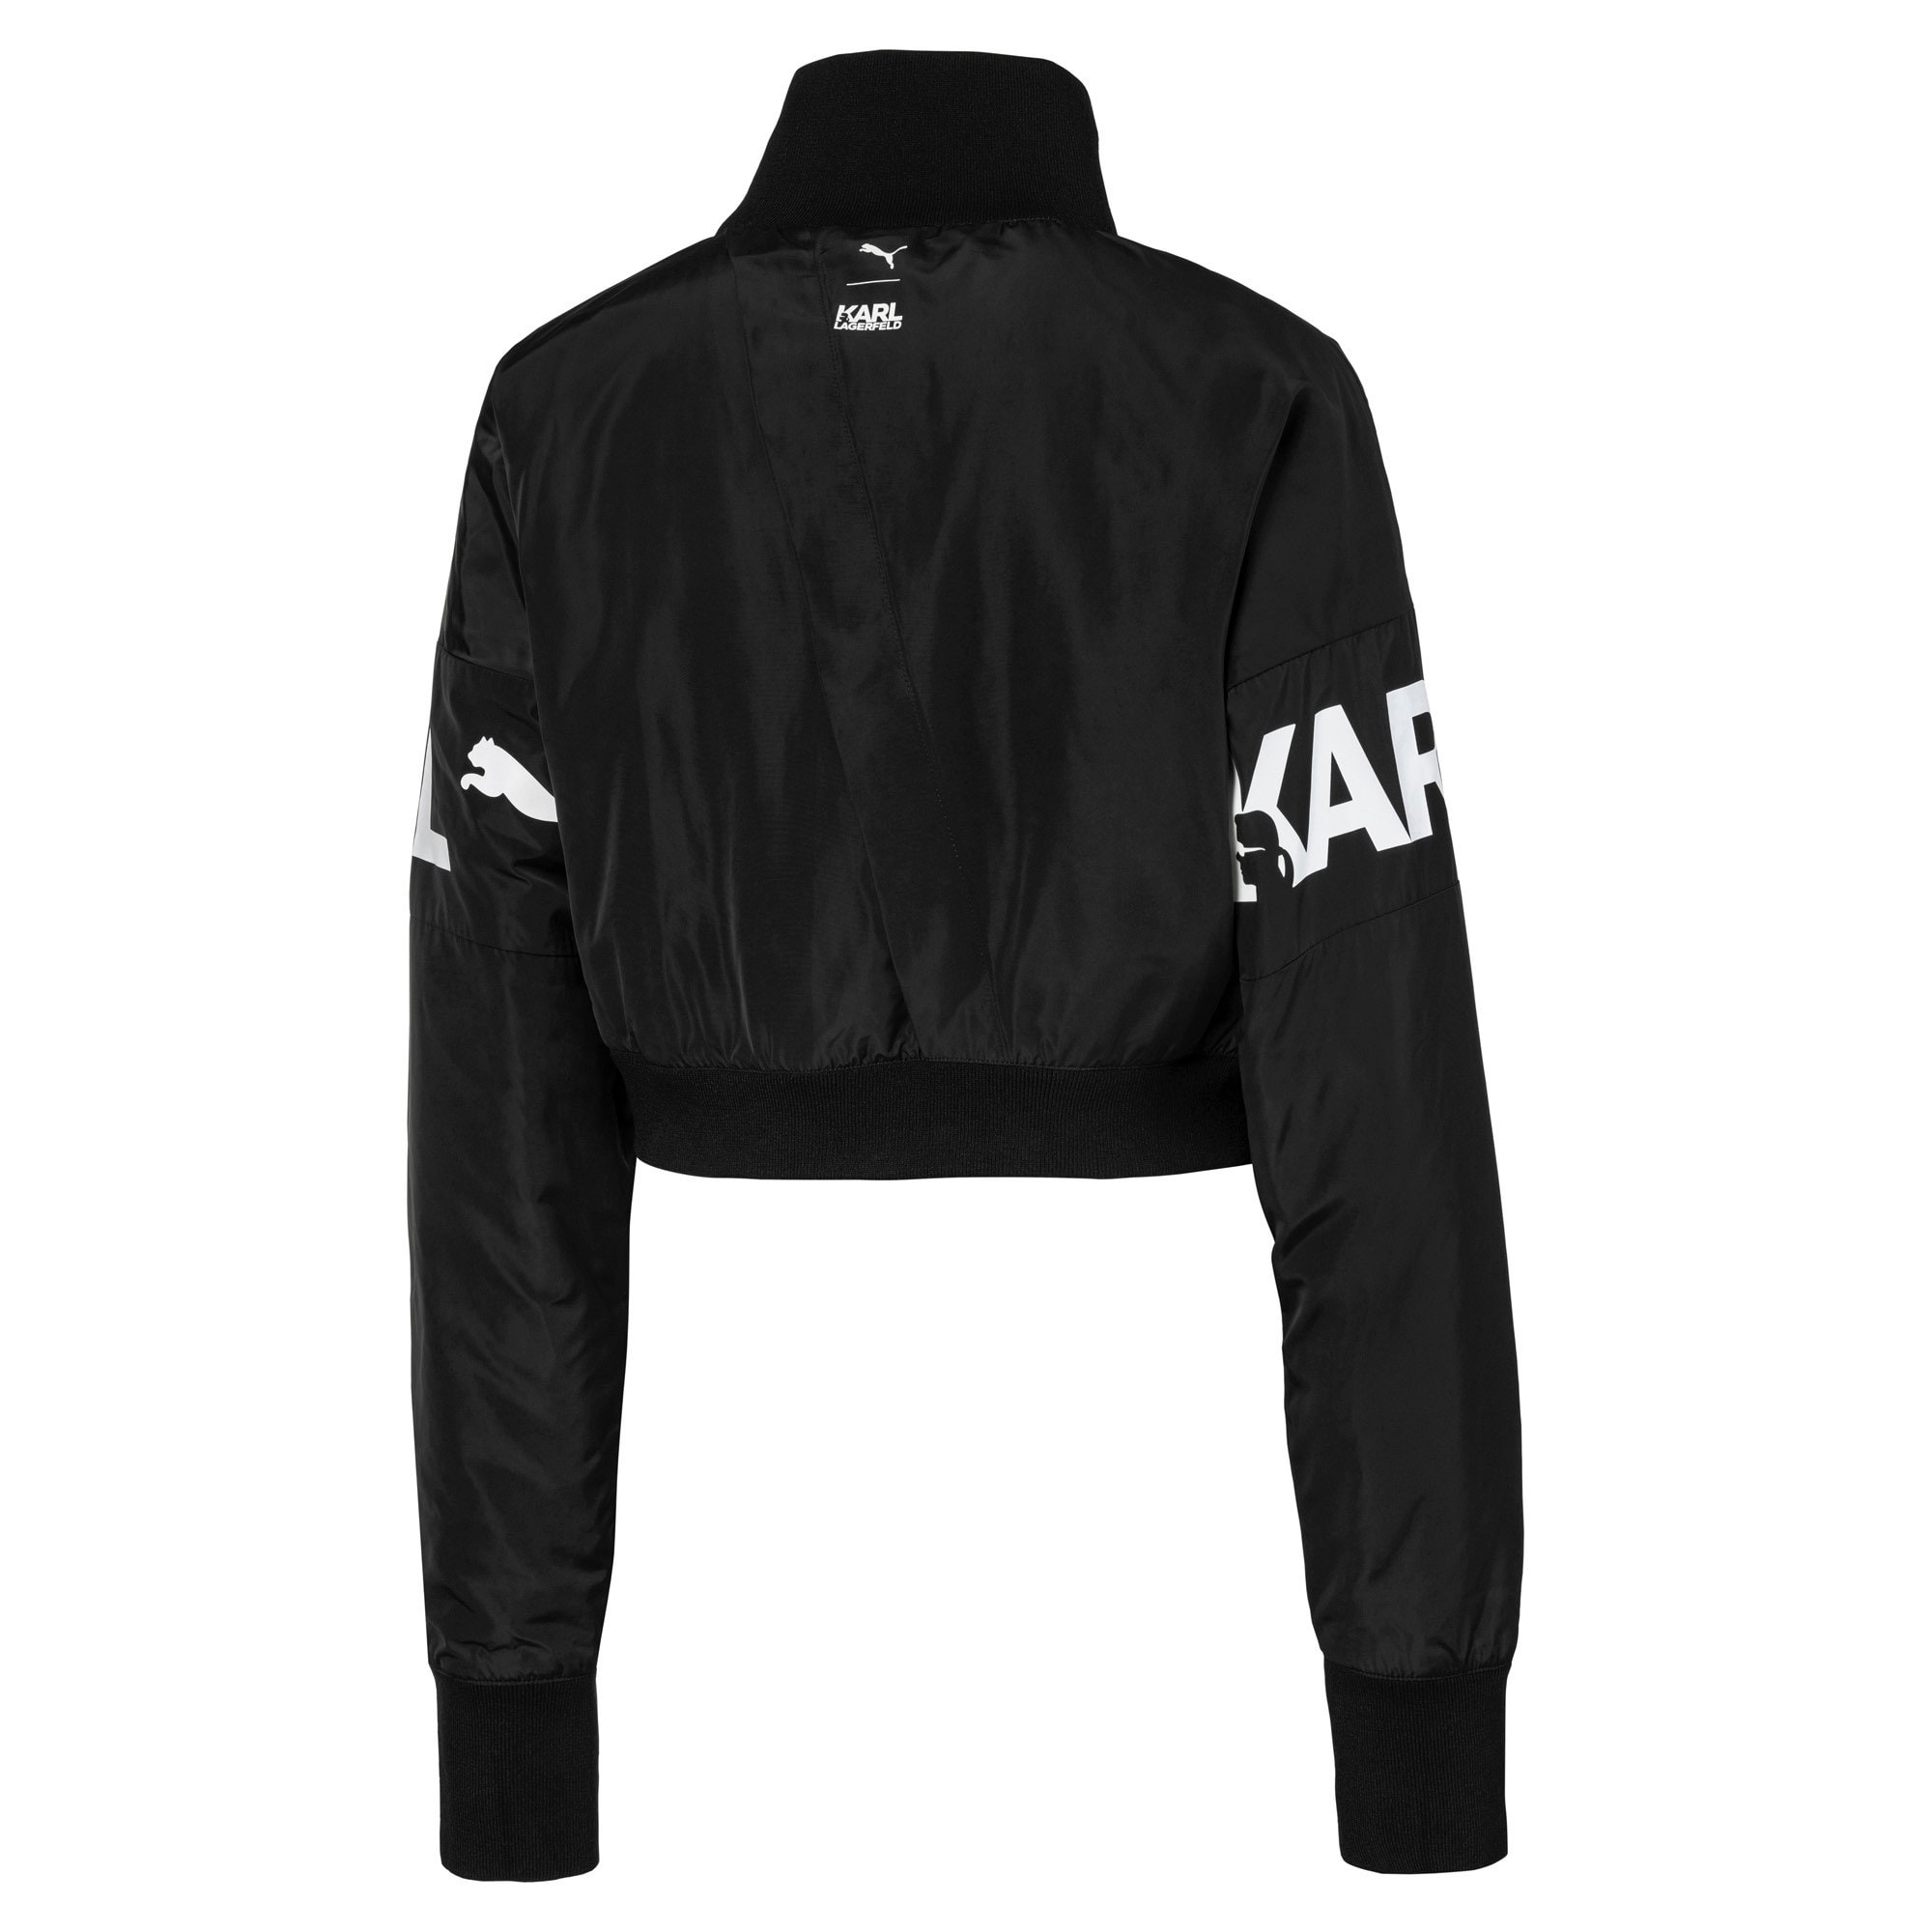 Thumbnail 4 of PUMA x KARL LAGERFELD Women's Bomber Jacket, Puma Black, medium